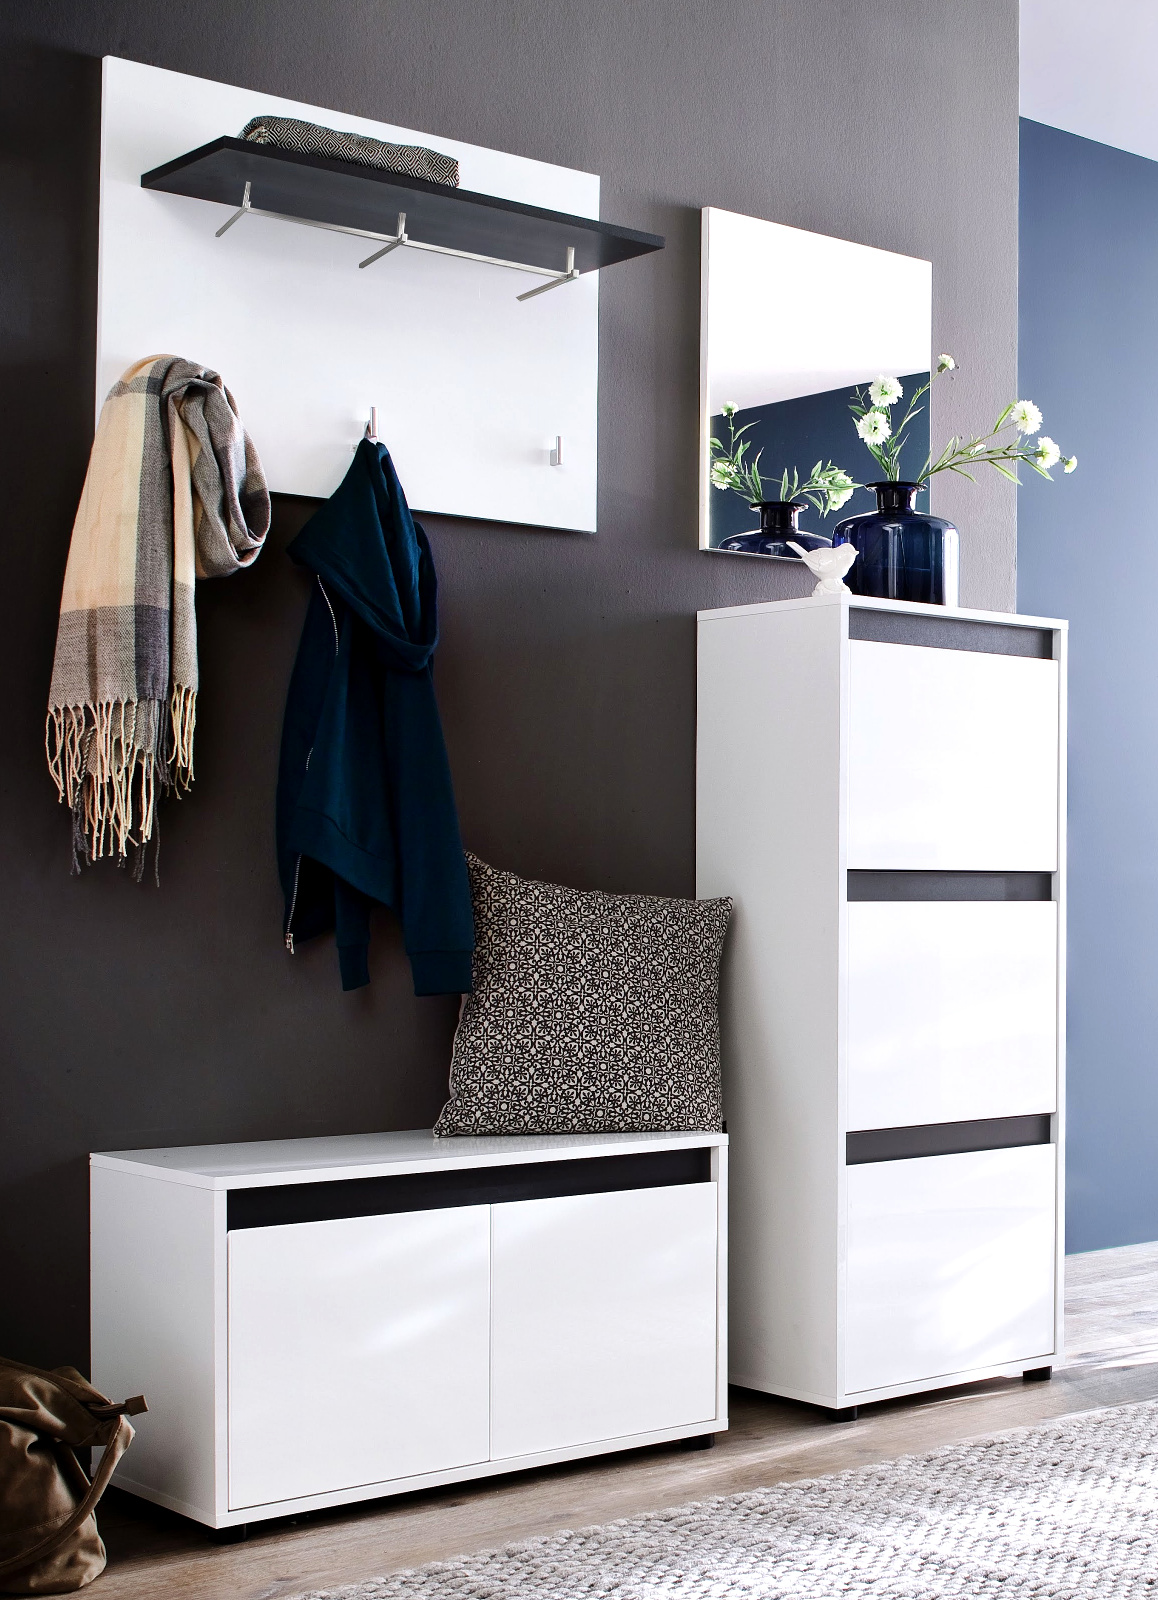 flurgarderobe sol lack hochglanz wei und grau 4 teilig. Black Bedroom Furniture Sets. Home Design Ideas